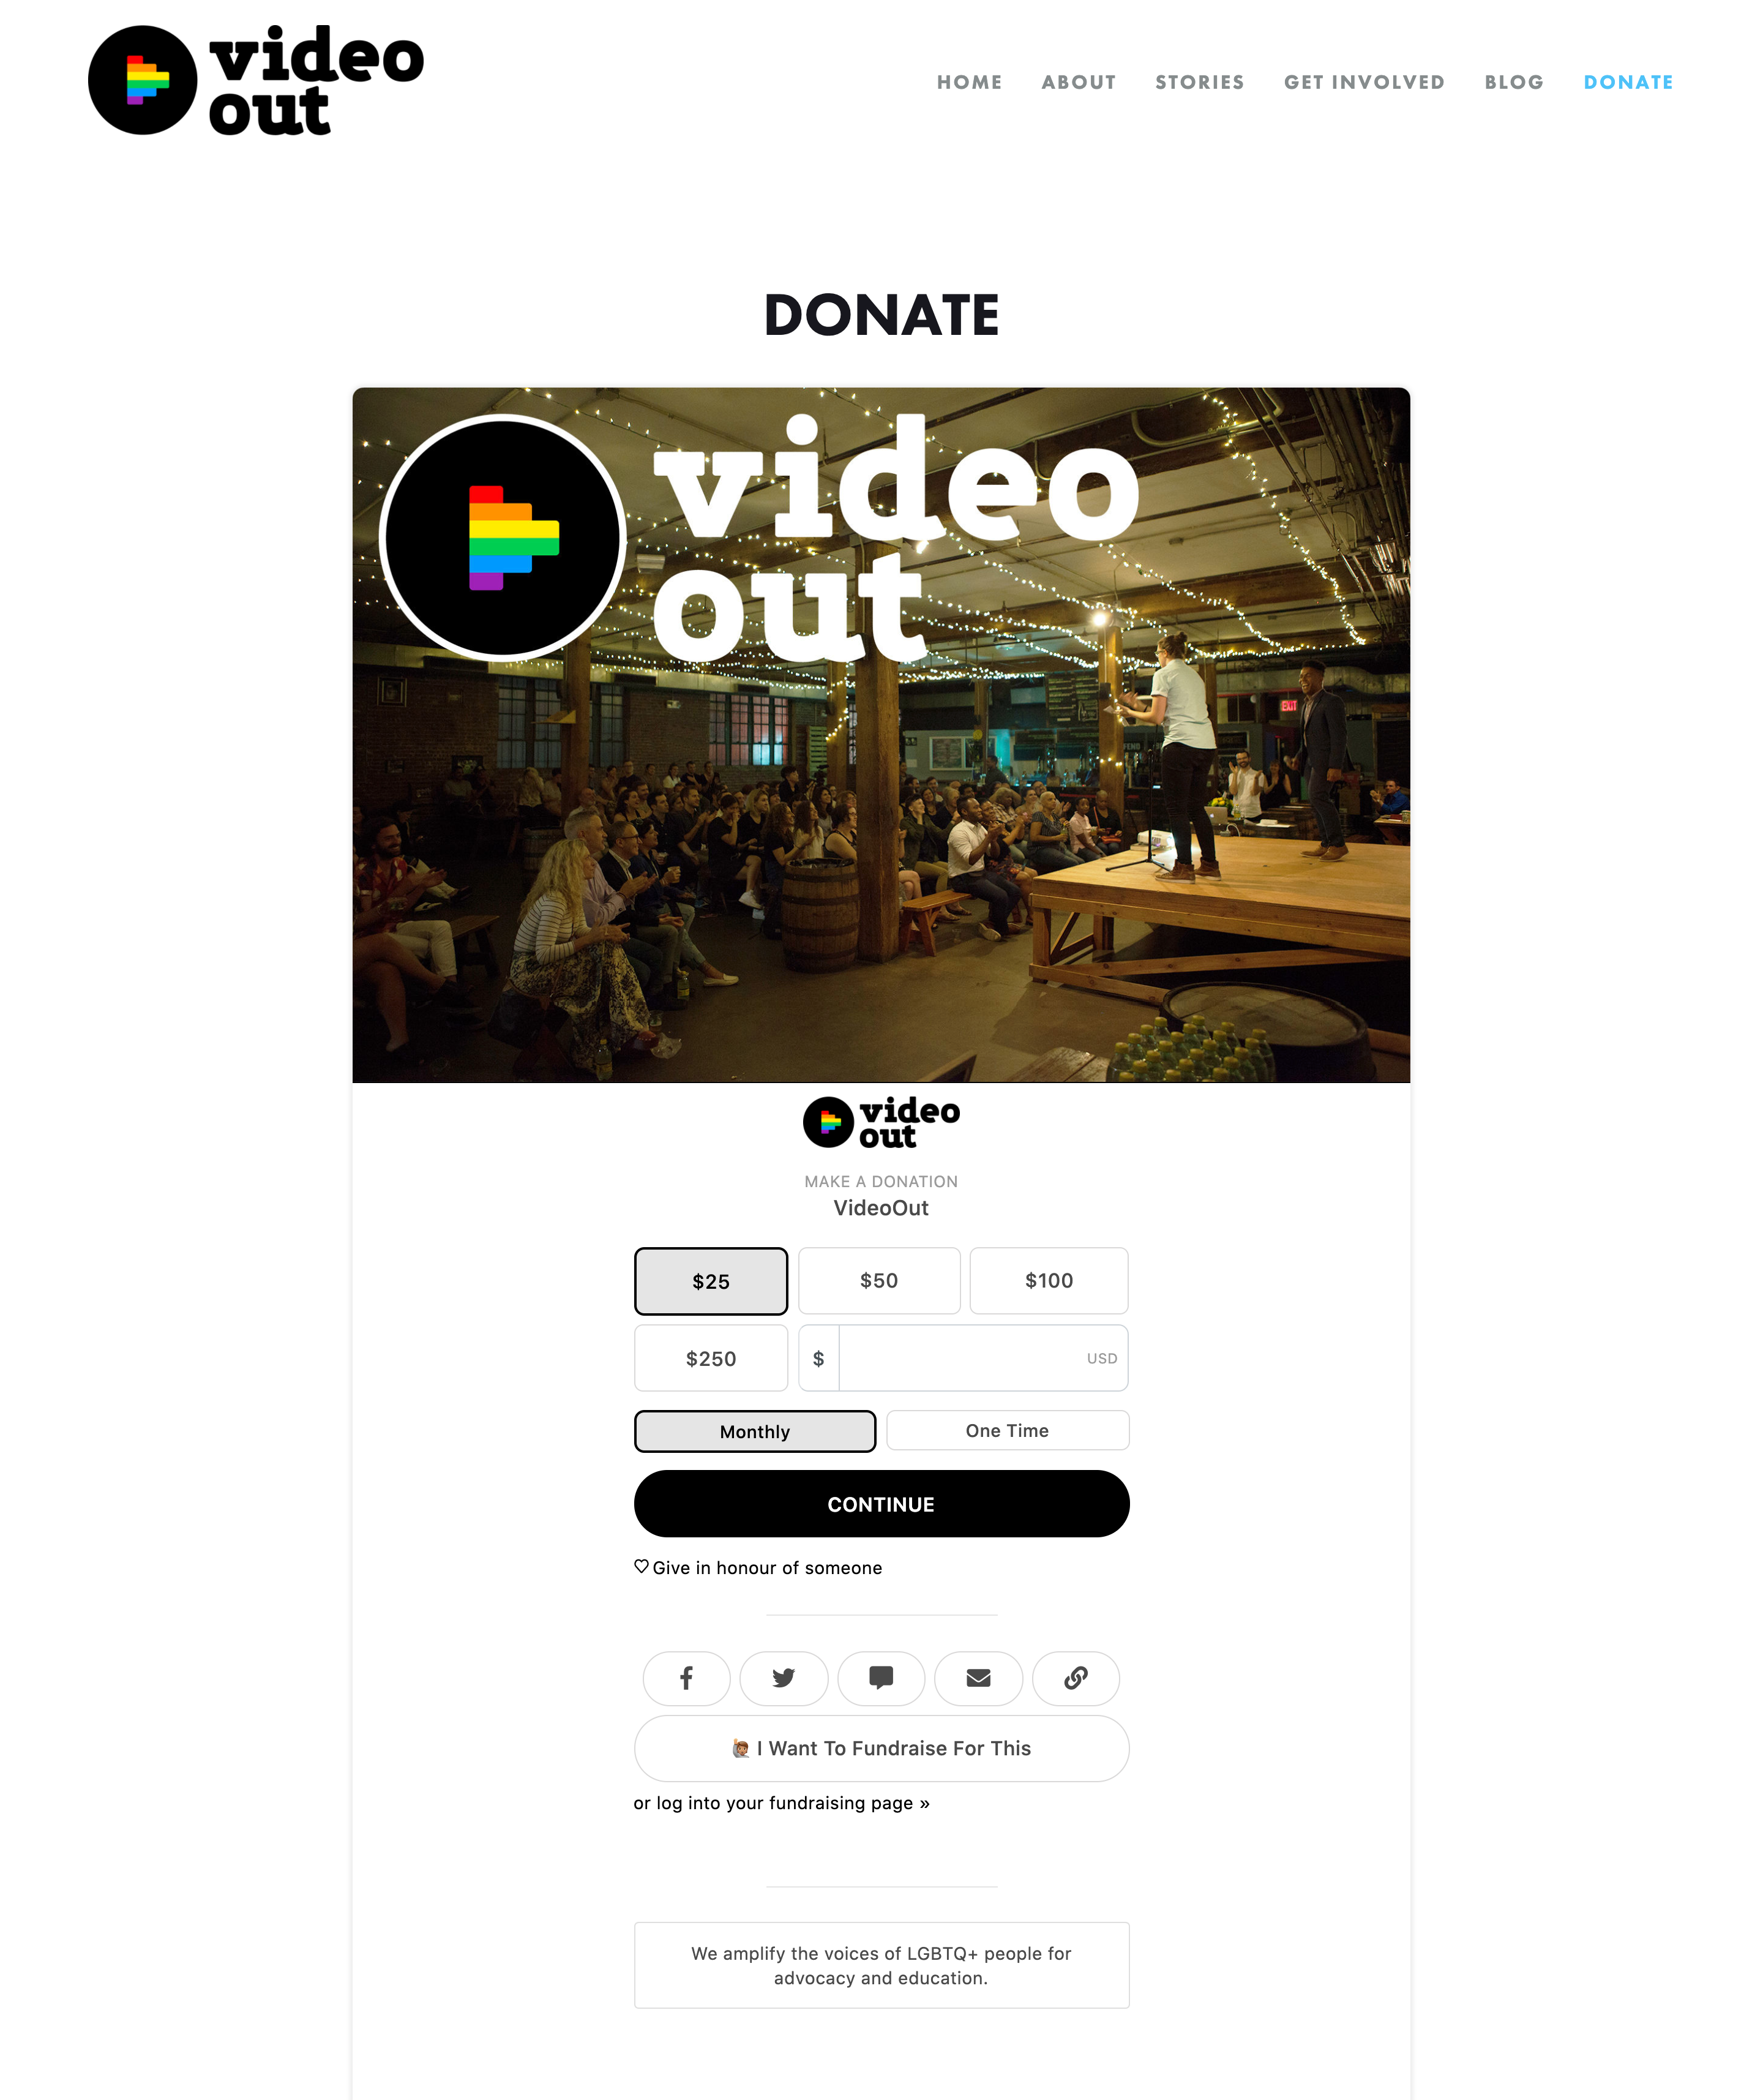 Video Out Website Donation Page using Give Lively's Branded Widget